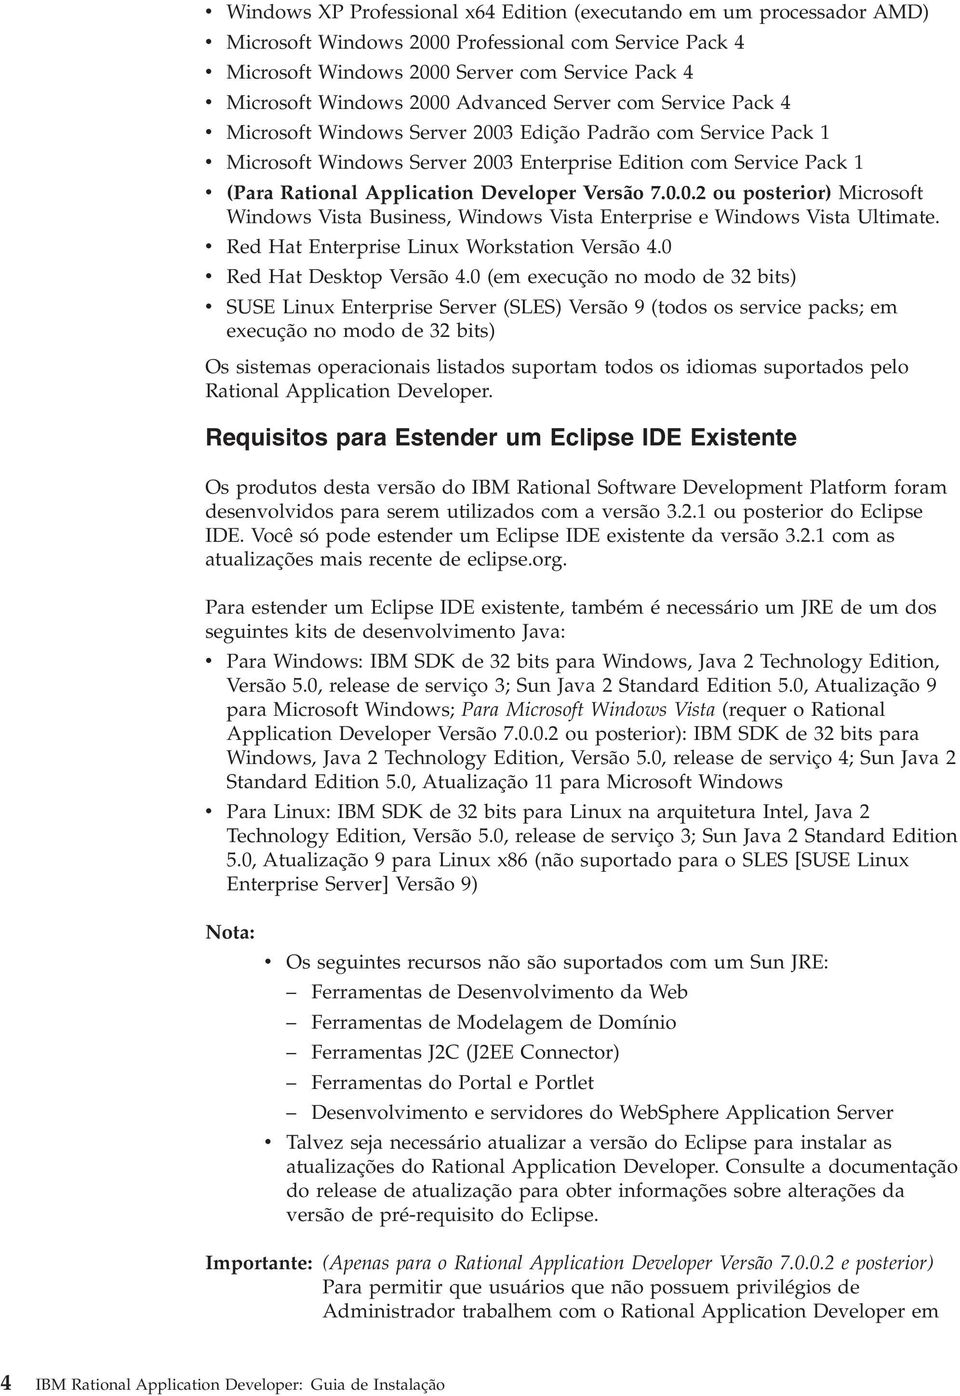 Application Developer Versão 7.0.0.2 ou posterior) Microsoft Windows Vista Business, Windows Vista Enterprise e Windows Vista Ultimate. v Red Hat Enterprise Linux Workstation Versão 4.